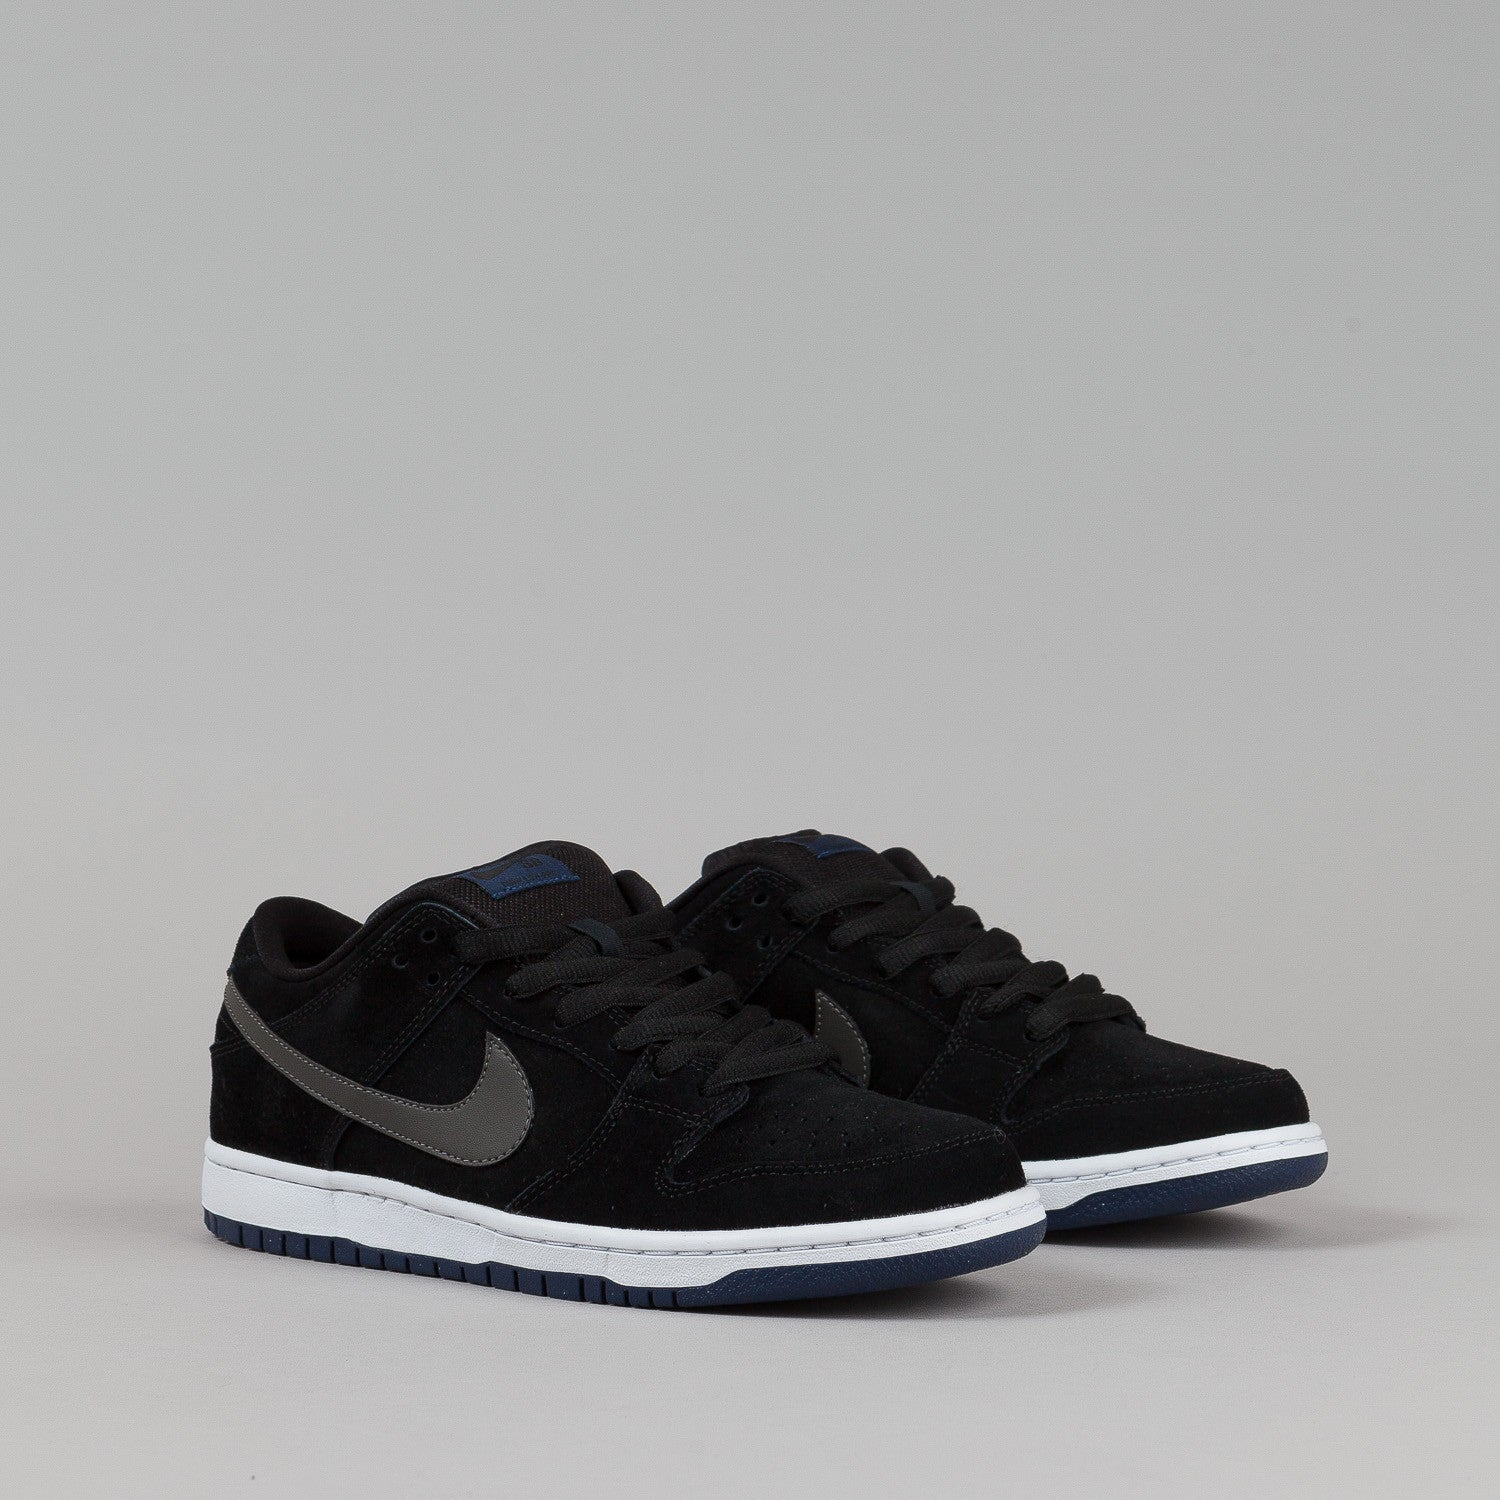 Nike SB Dunk Low Pro Shoes - Black / Mid Fog / Mid Navy / White